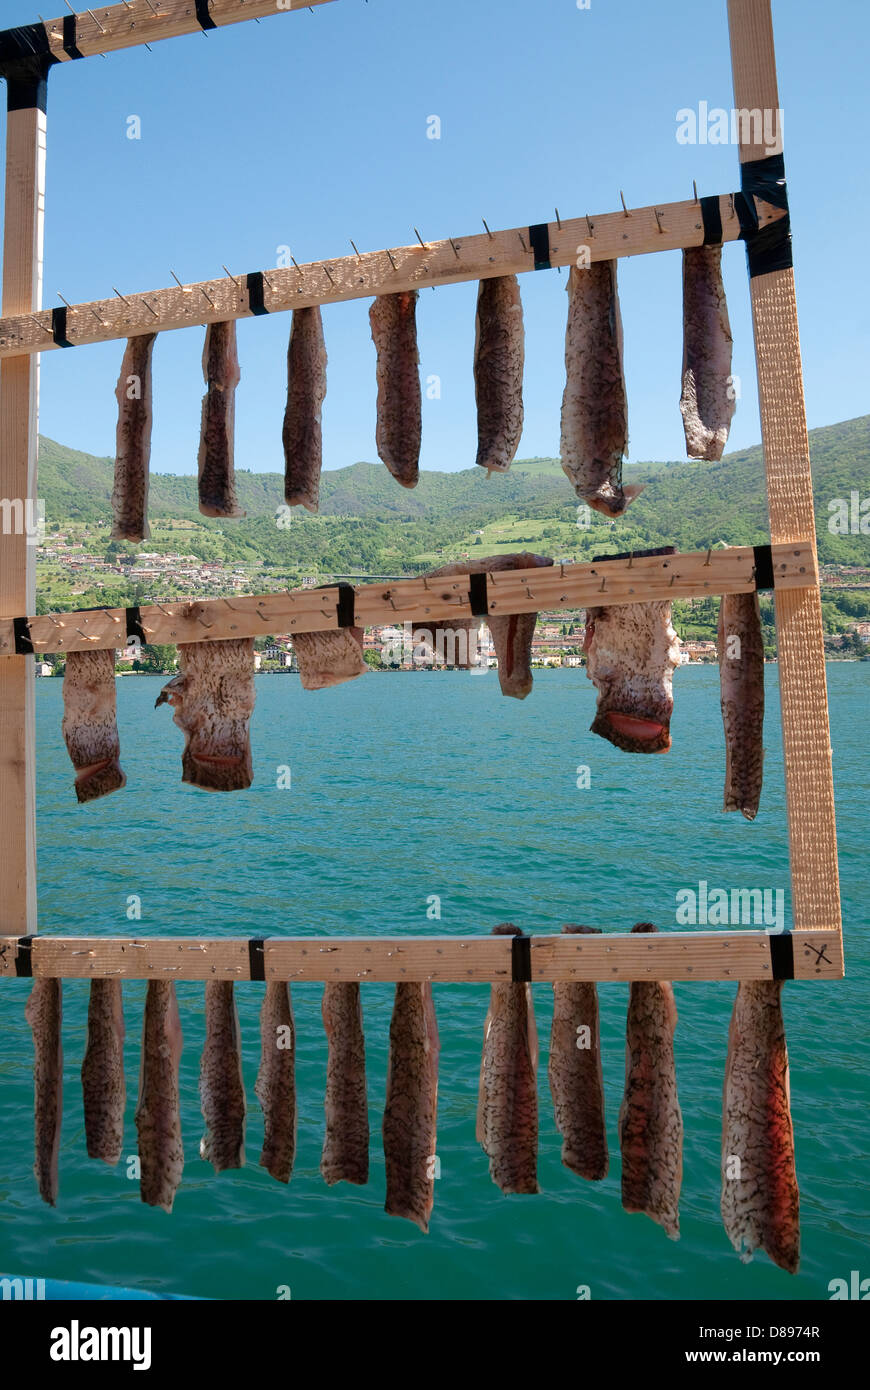 fish drying on rack, monte isola, lake iseo, lombardy, italy - Stock Image